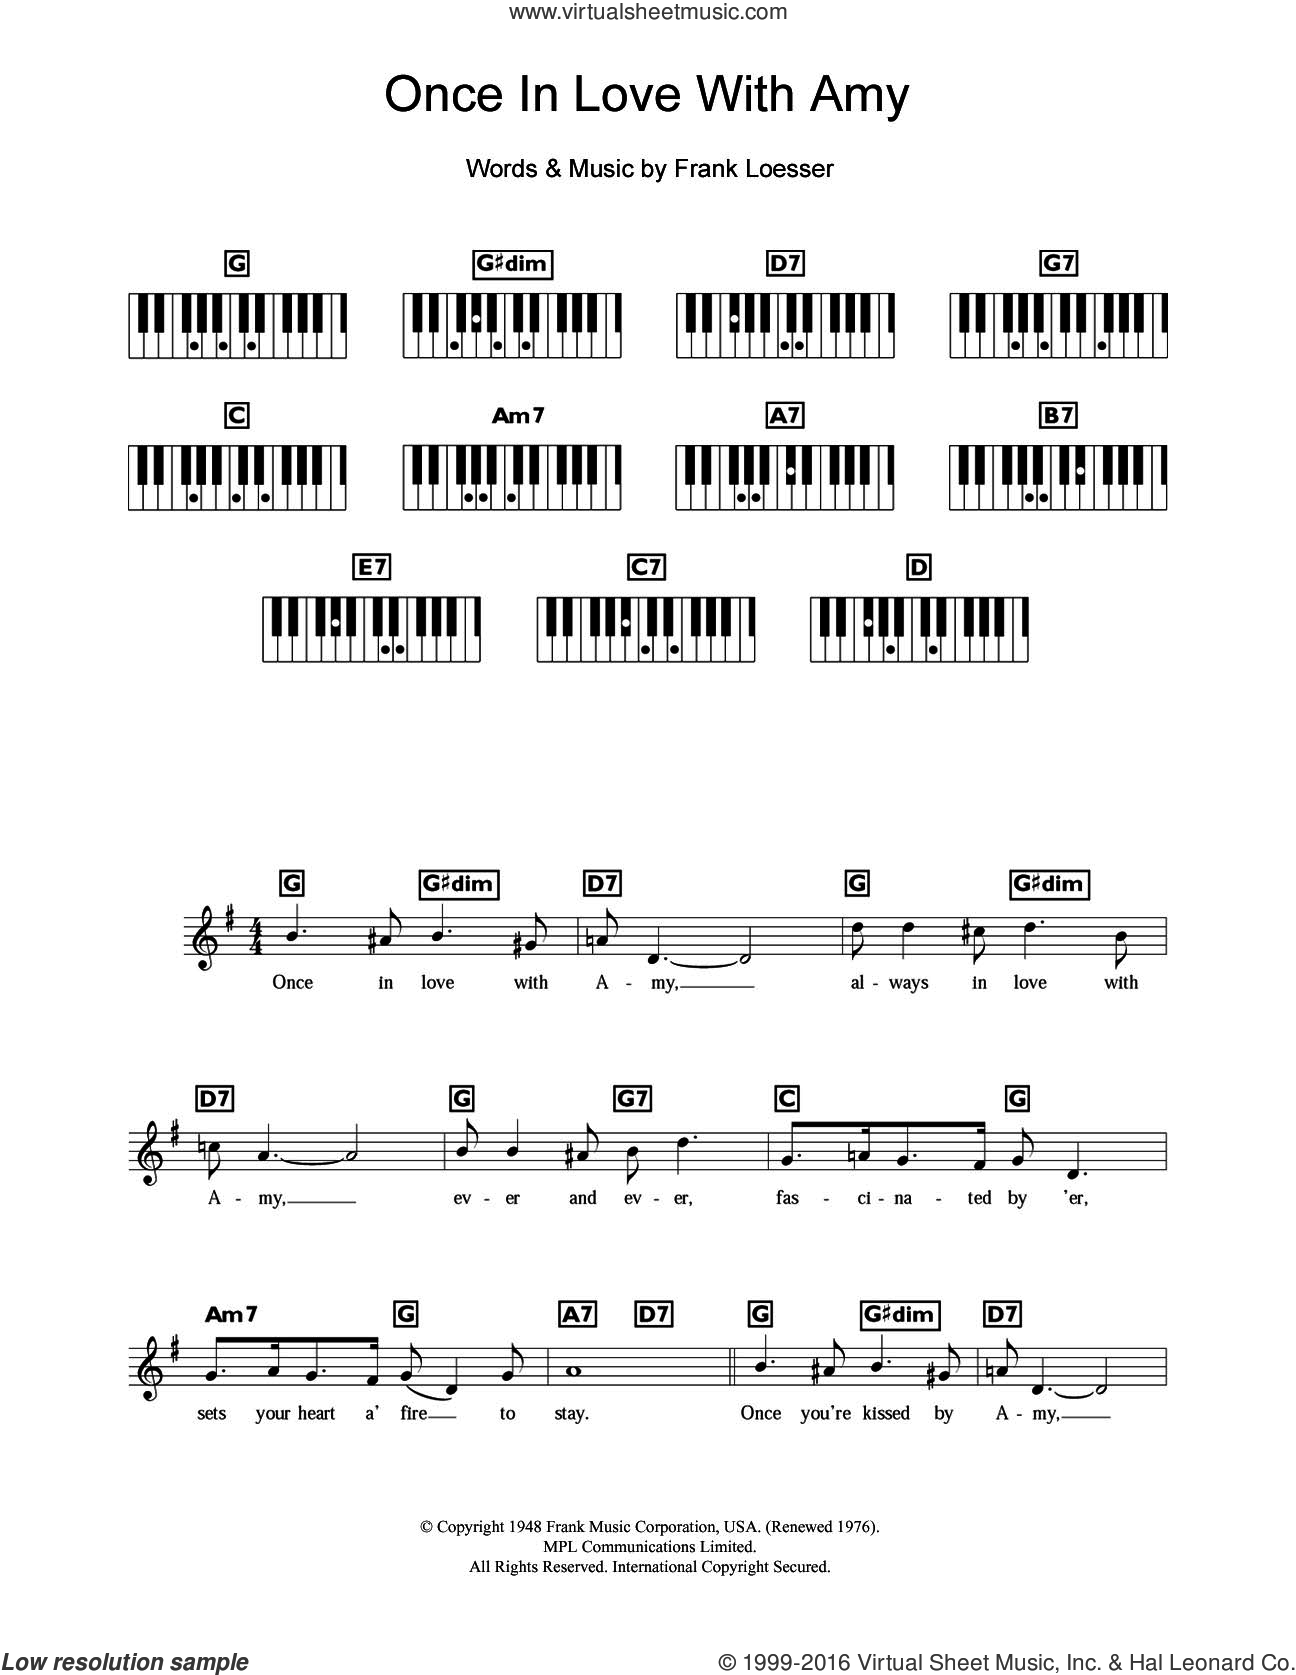 Once In Love With Amy (from Where's Charley?) sheet music for piano solo (chords, lyrics, melody) by Frank Loesser. Score Image Preview.